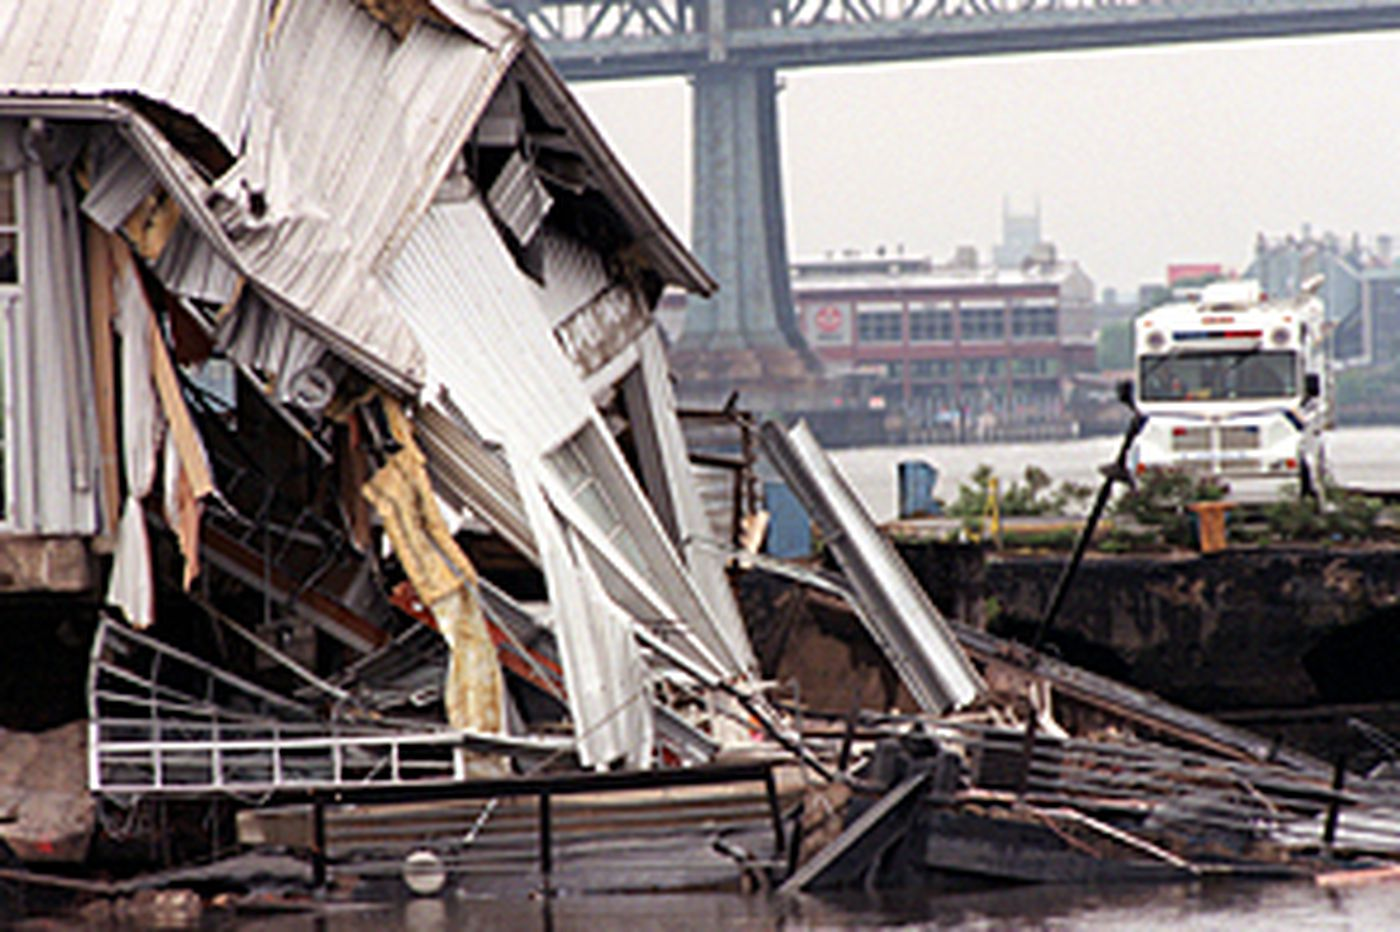 Pier 34 owner, operator enter pleas, avoid retrial in collapse